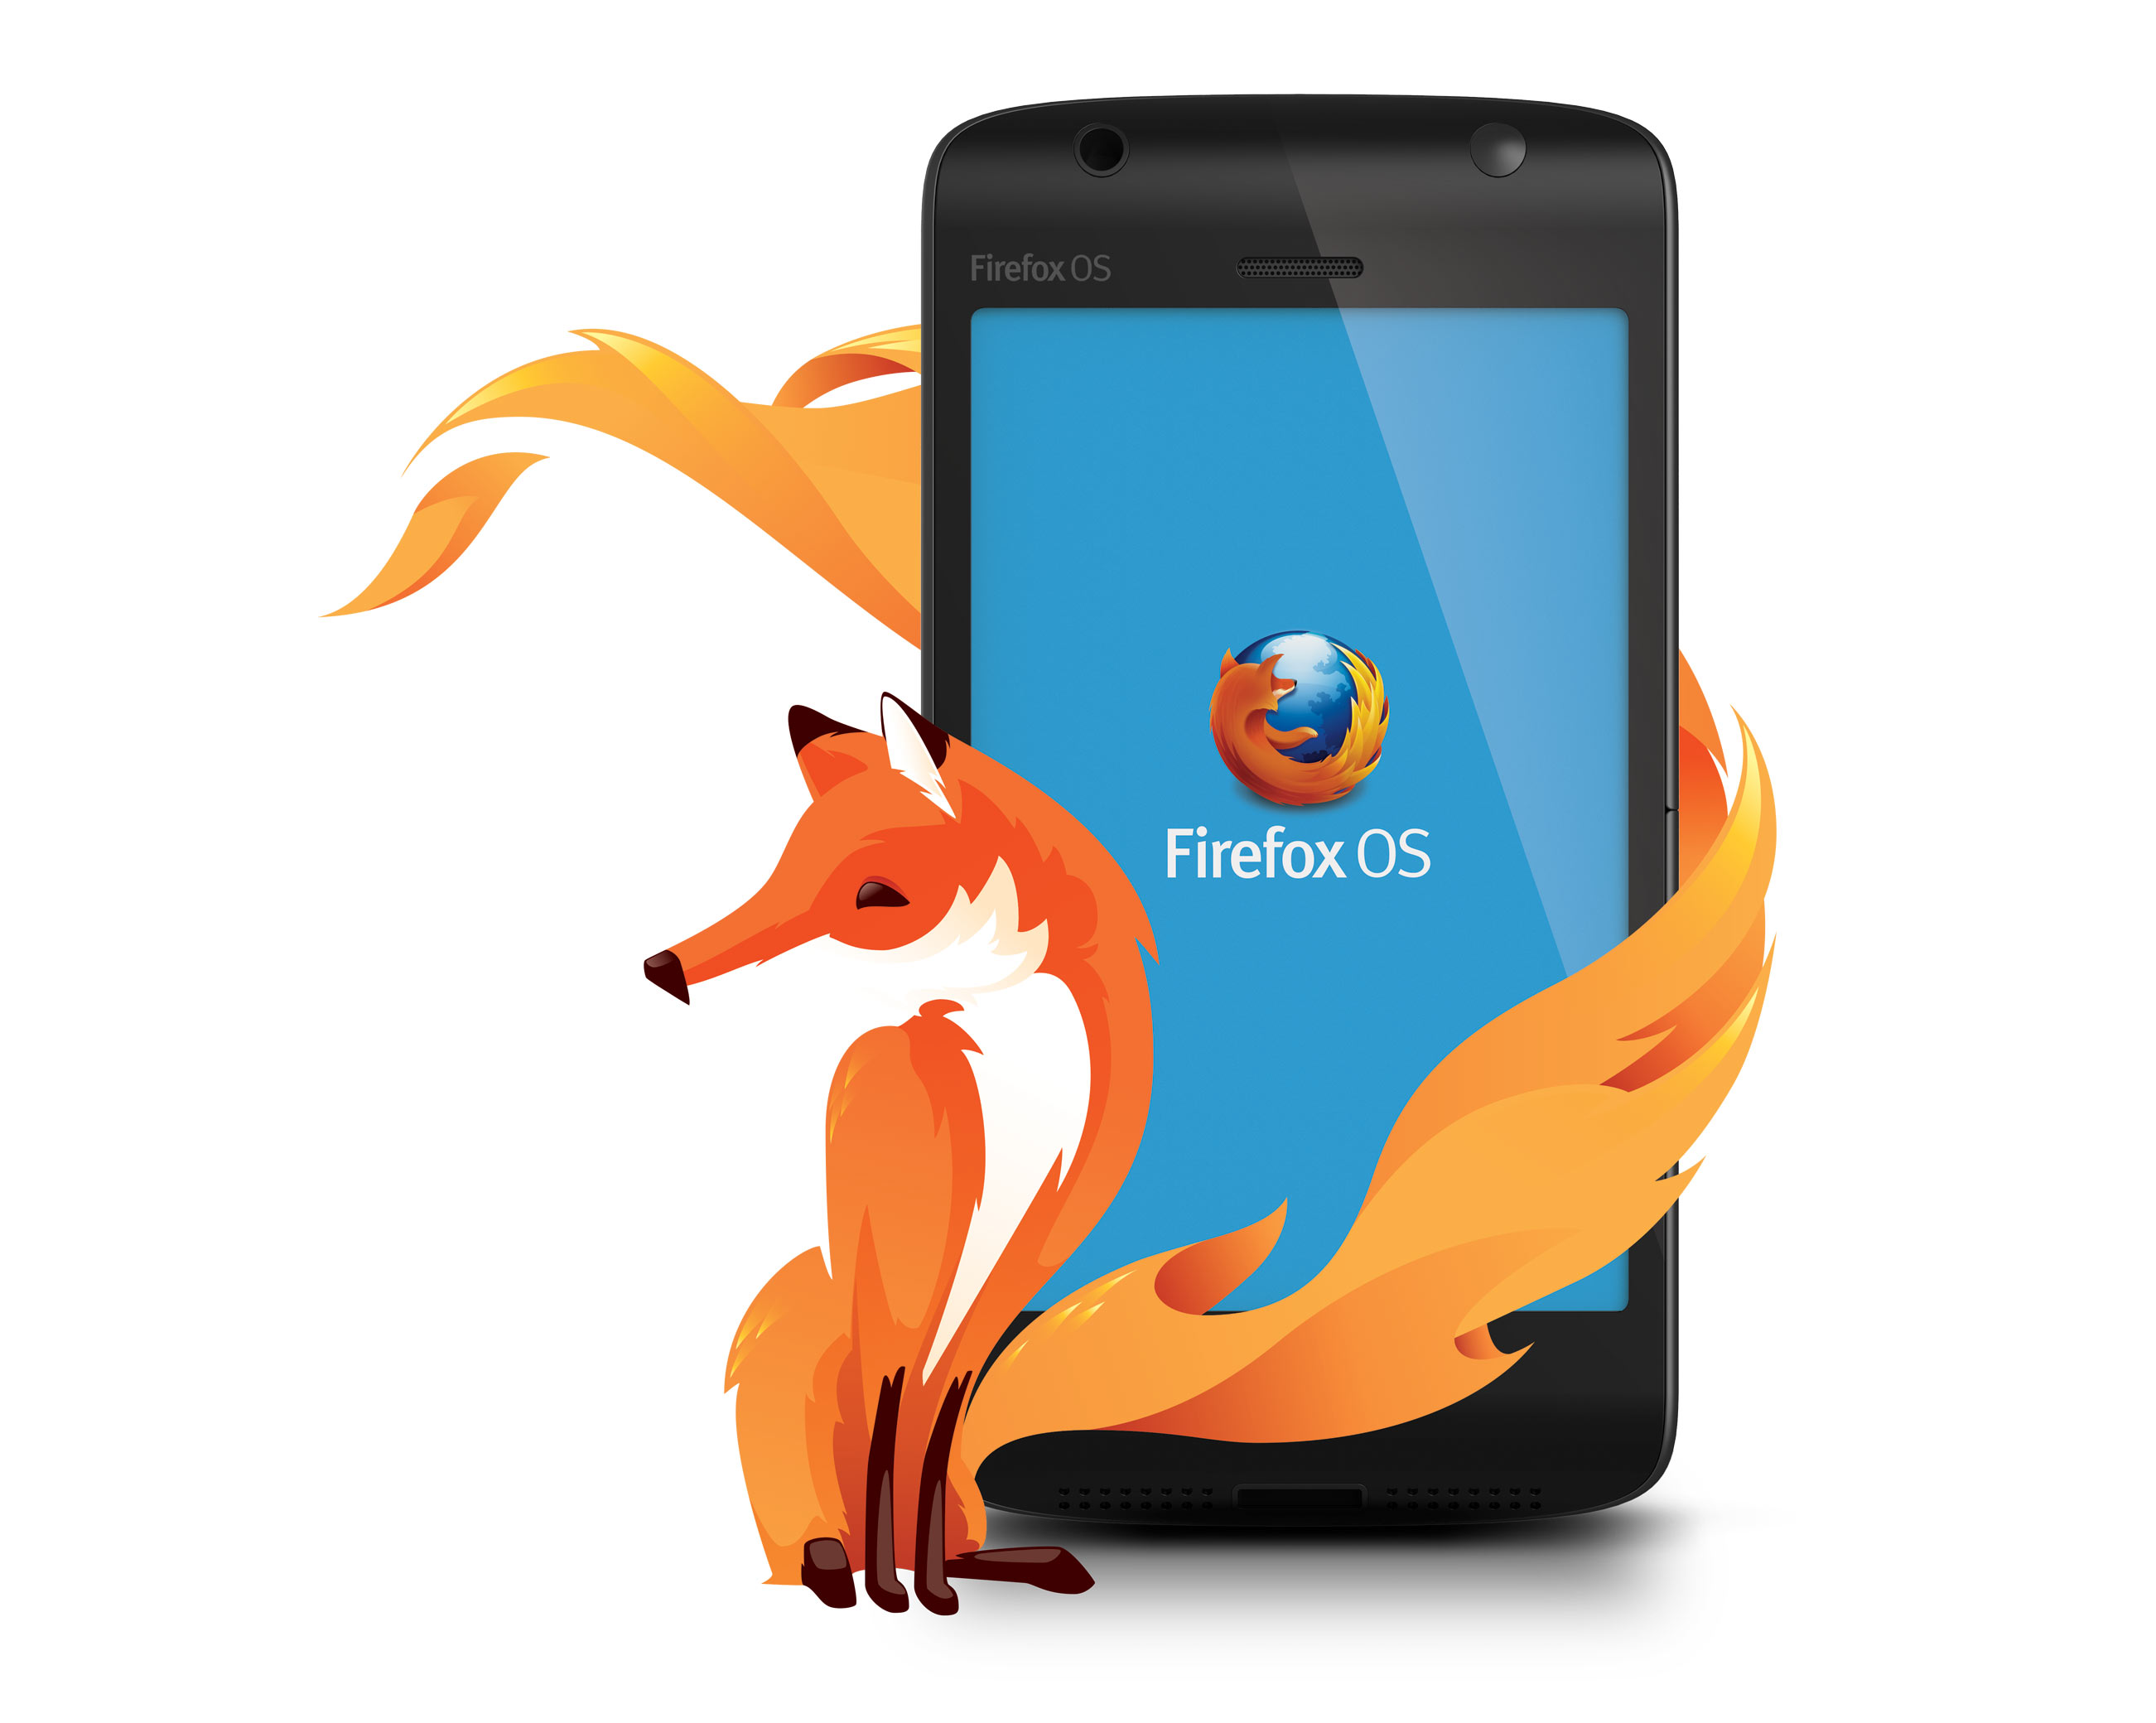 Firefox OS expands Mozilla products into the mobile OS market.